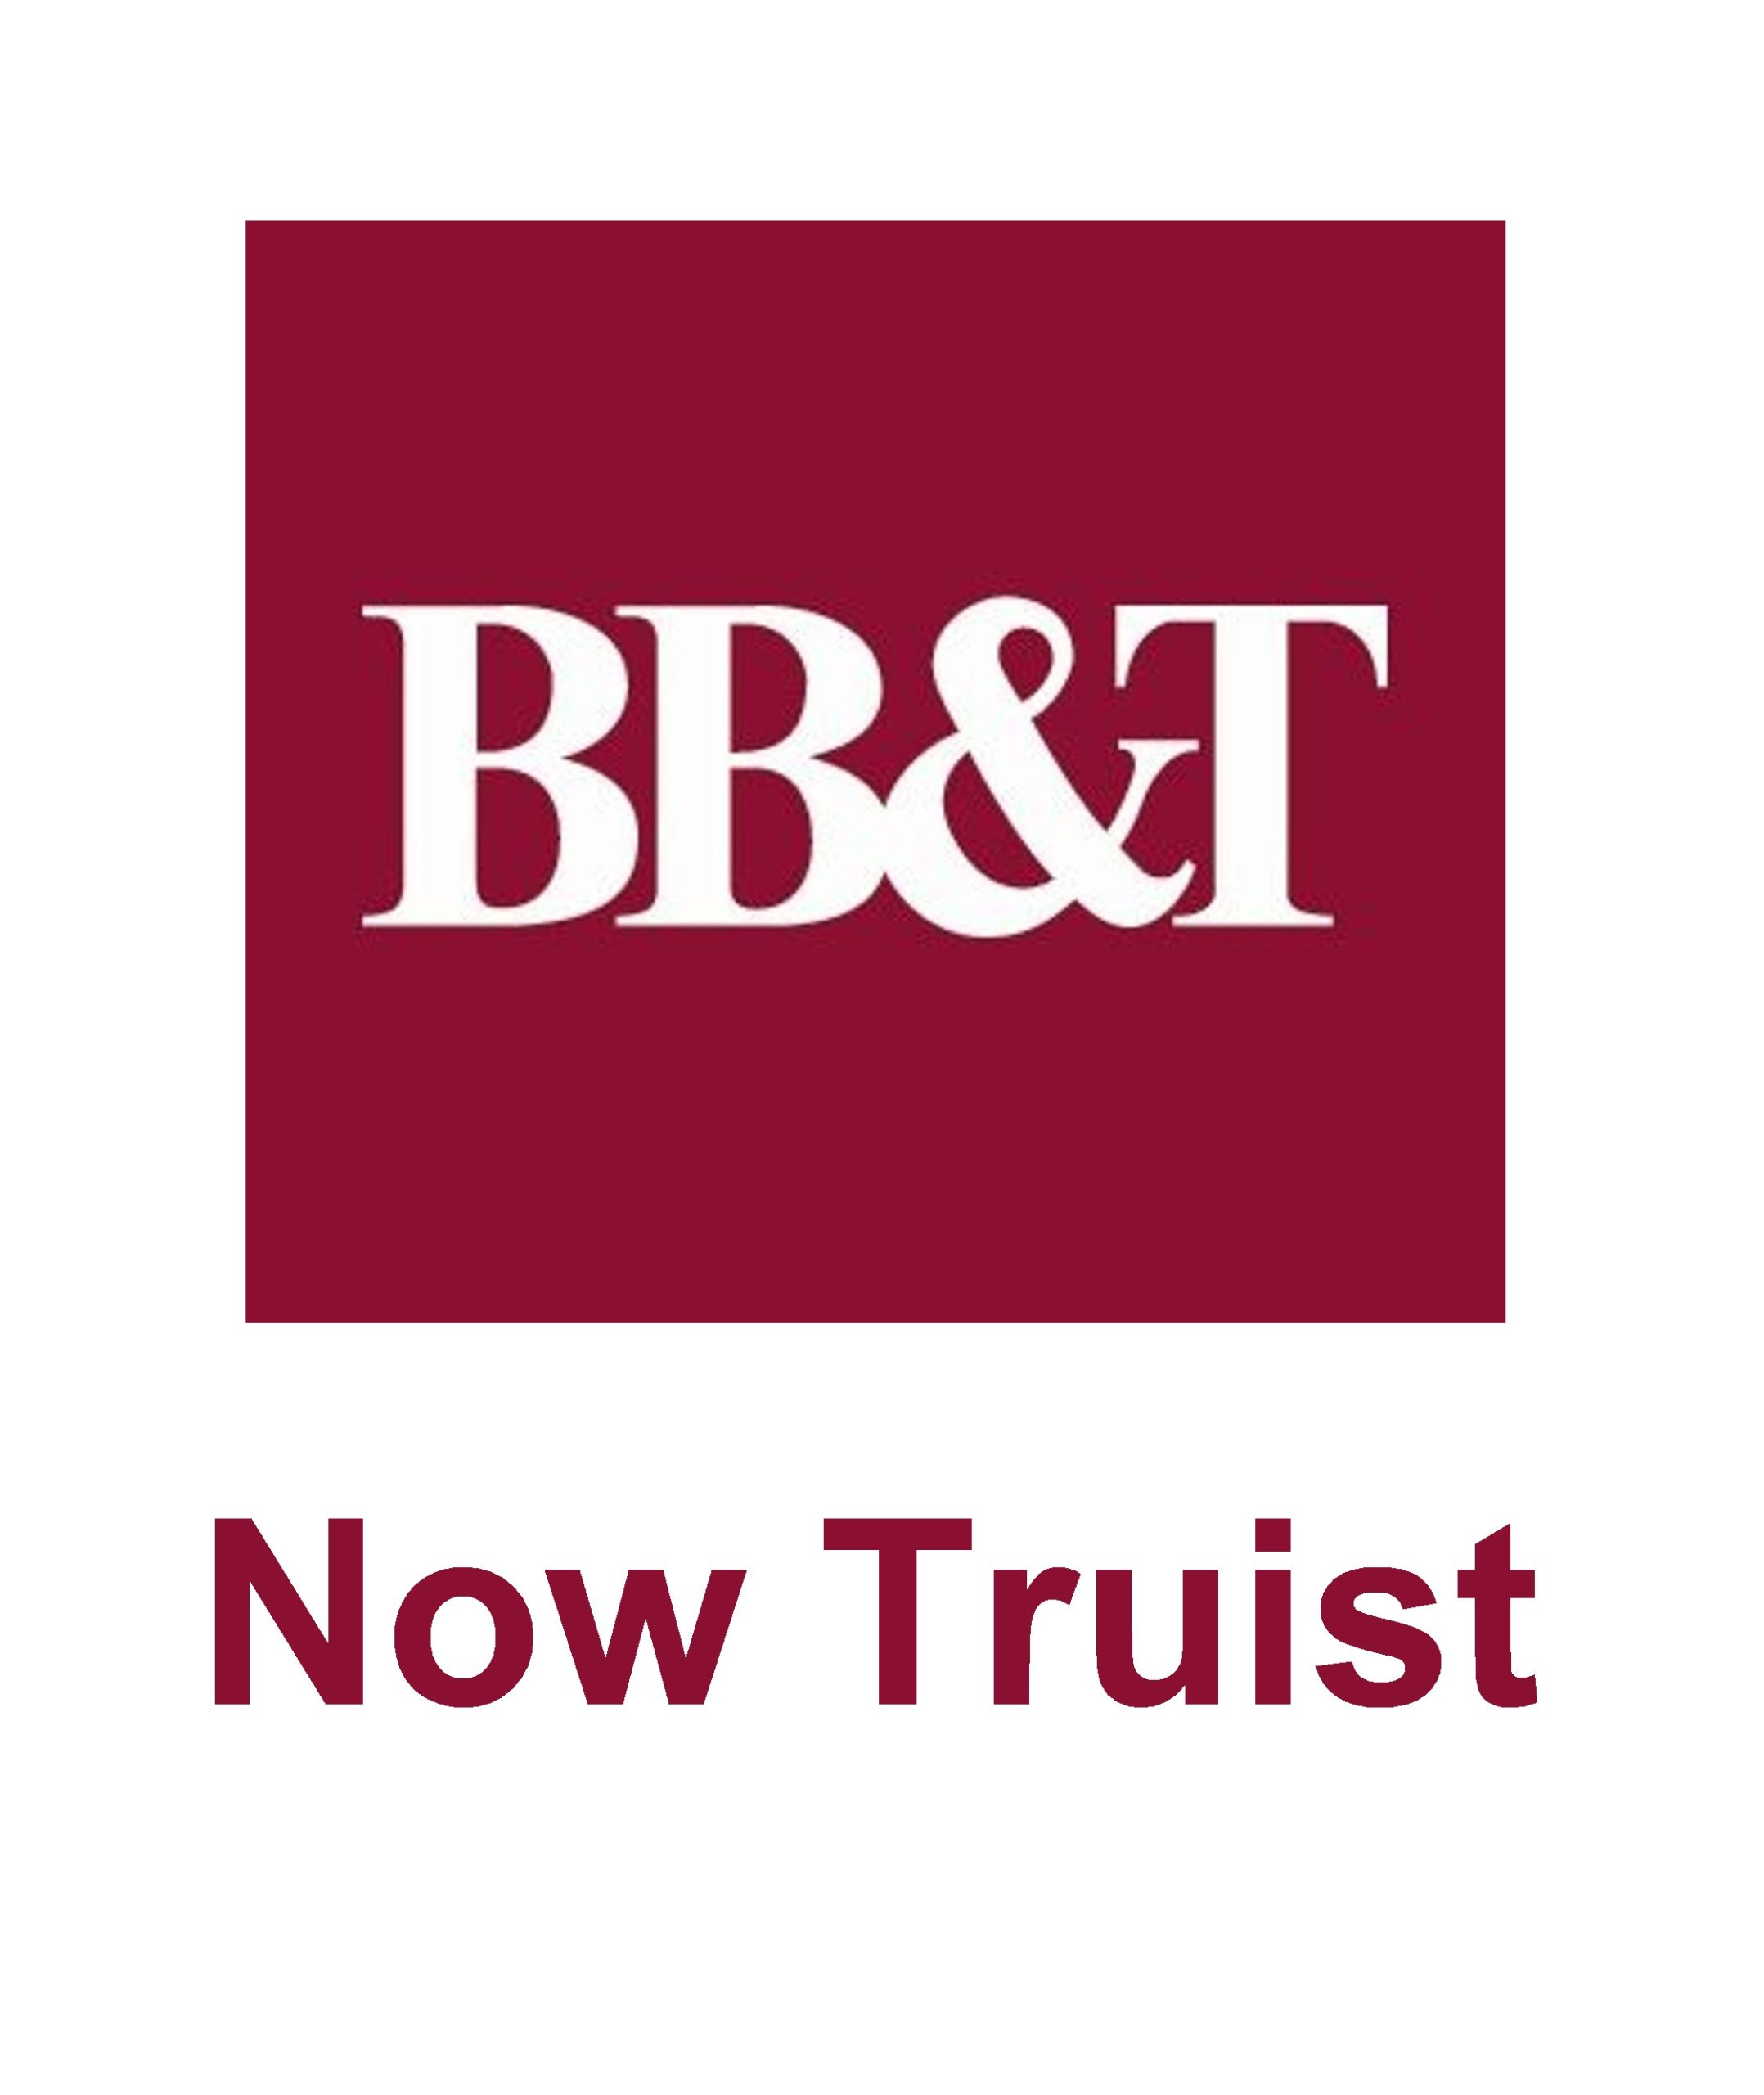 Logo of BB&T financial organization. Red square with white BB&T letters on top. Below the square says Now Truist